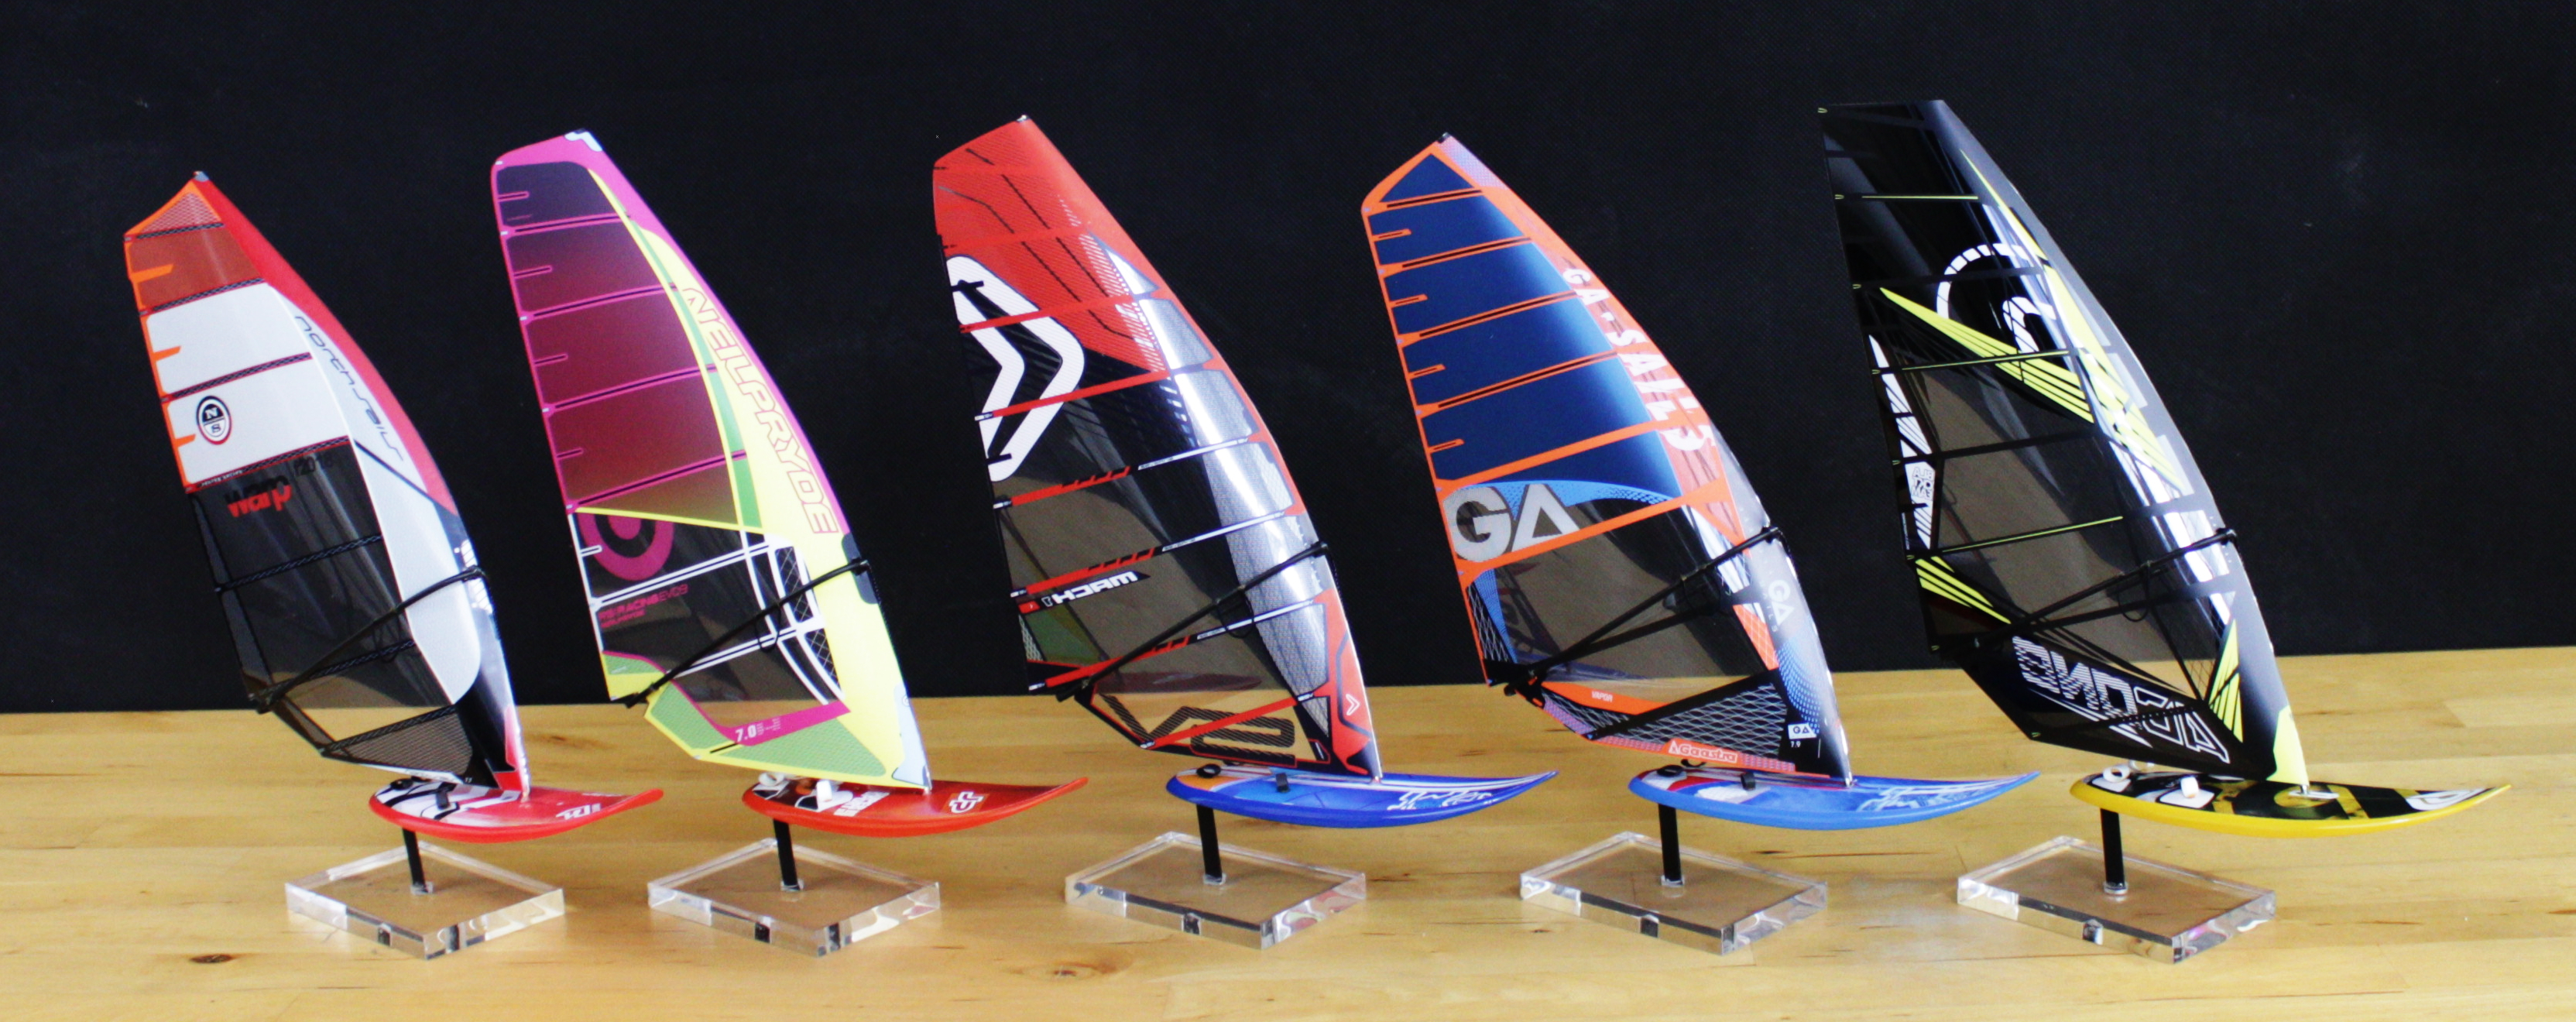 all windsurf freeride models